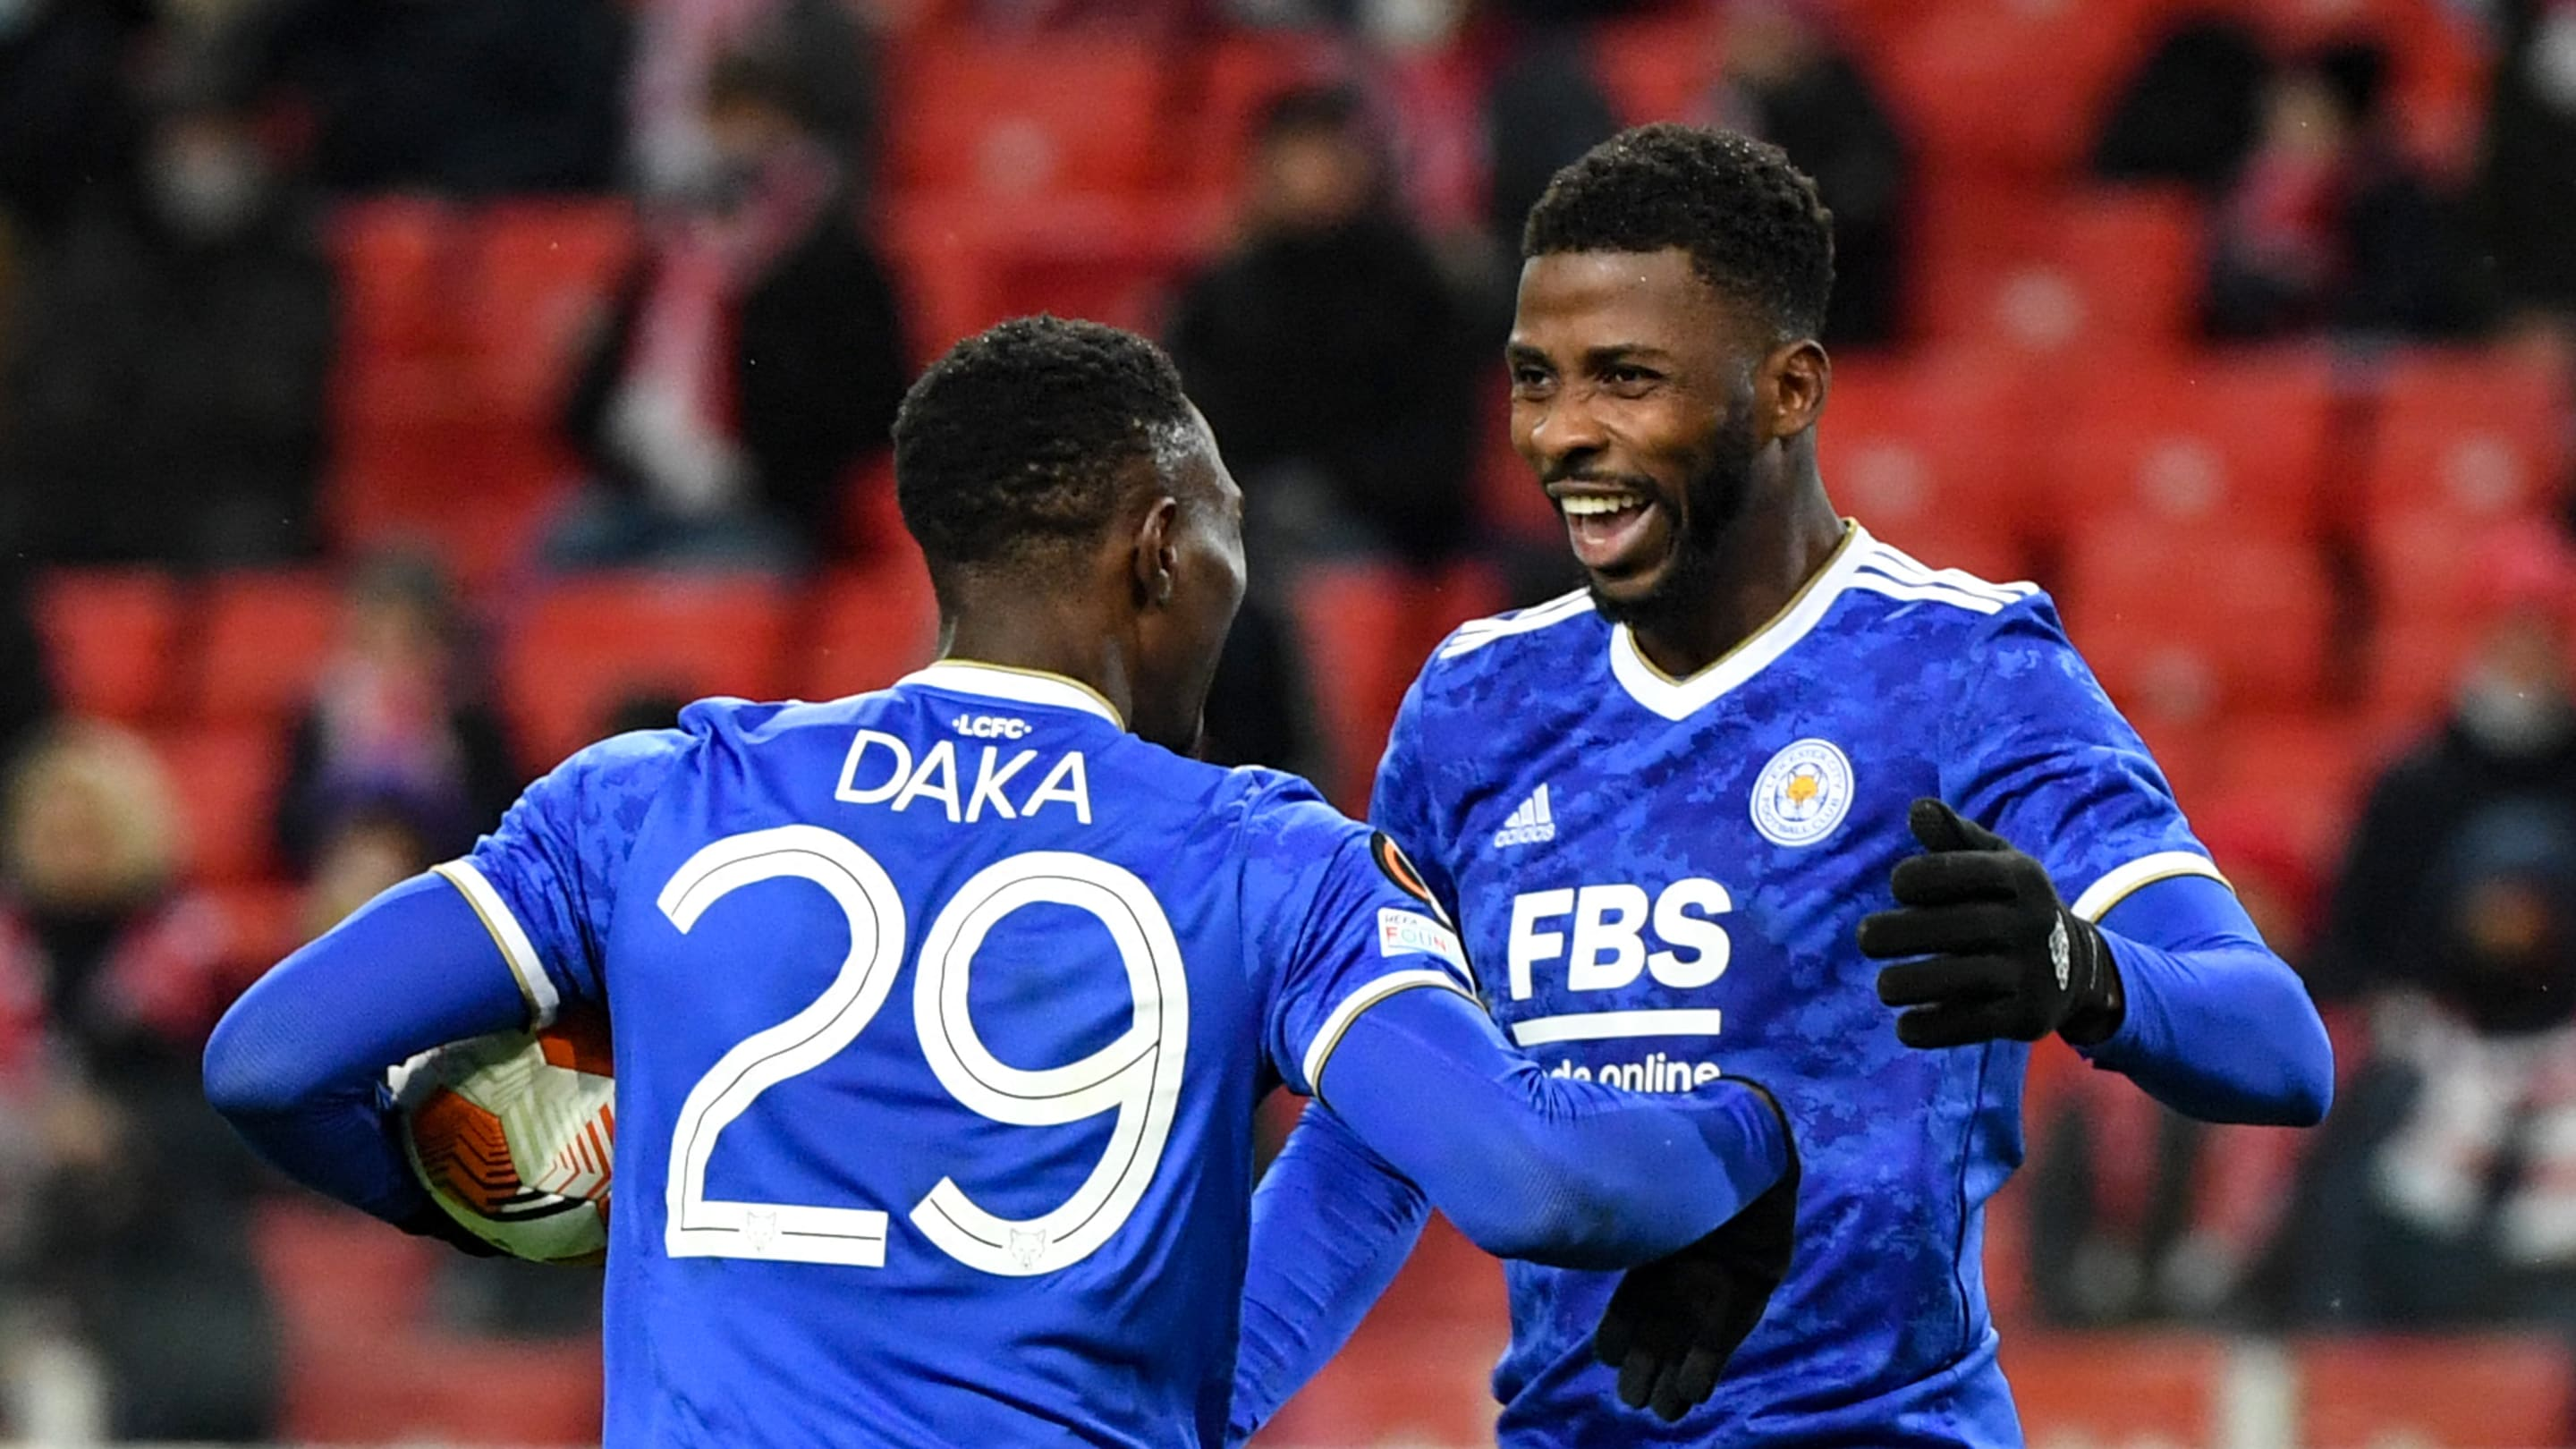 Spartak Moscow 3-4 Leicester: Player ratings as Patson Daka scores all 4